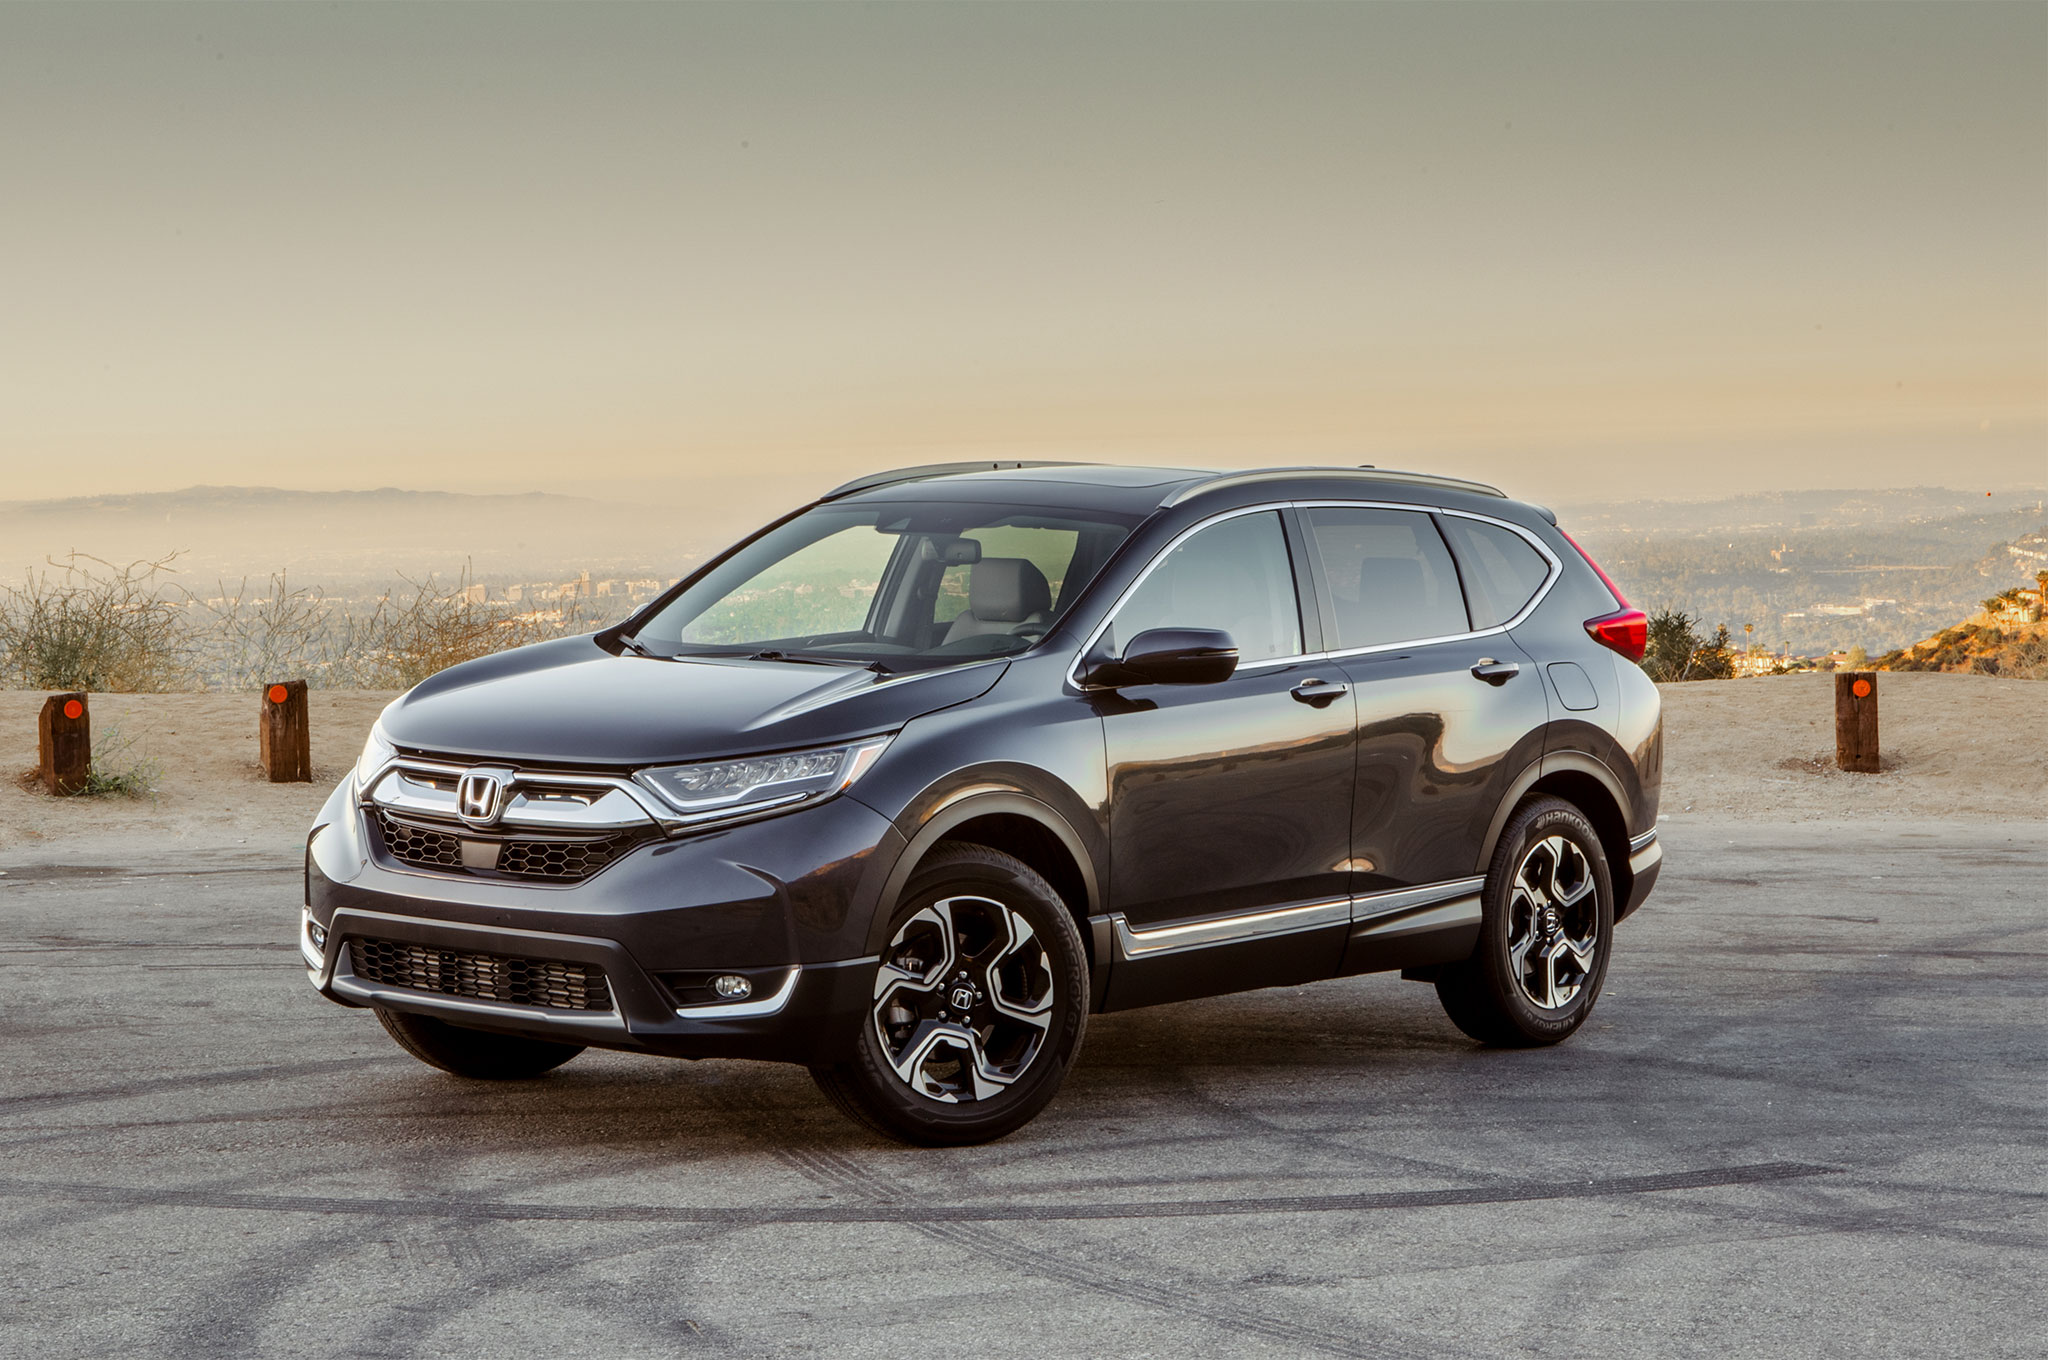 Zimmerman Honda Can Tell You More About Our No Money Down On A Honda CR V  Bettendorf, IA. The Beautiful Honda CR V Is A Compact SUV That Provides You  With ...